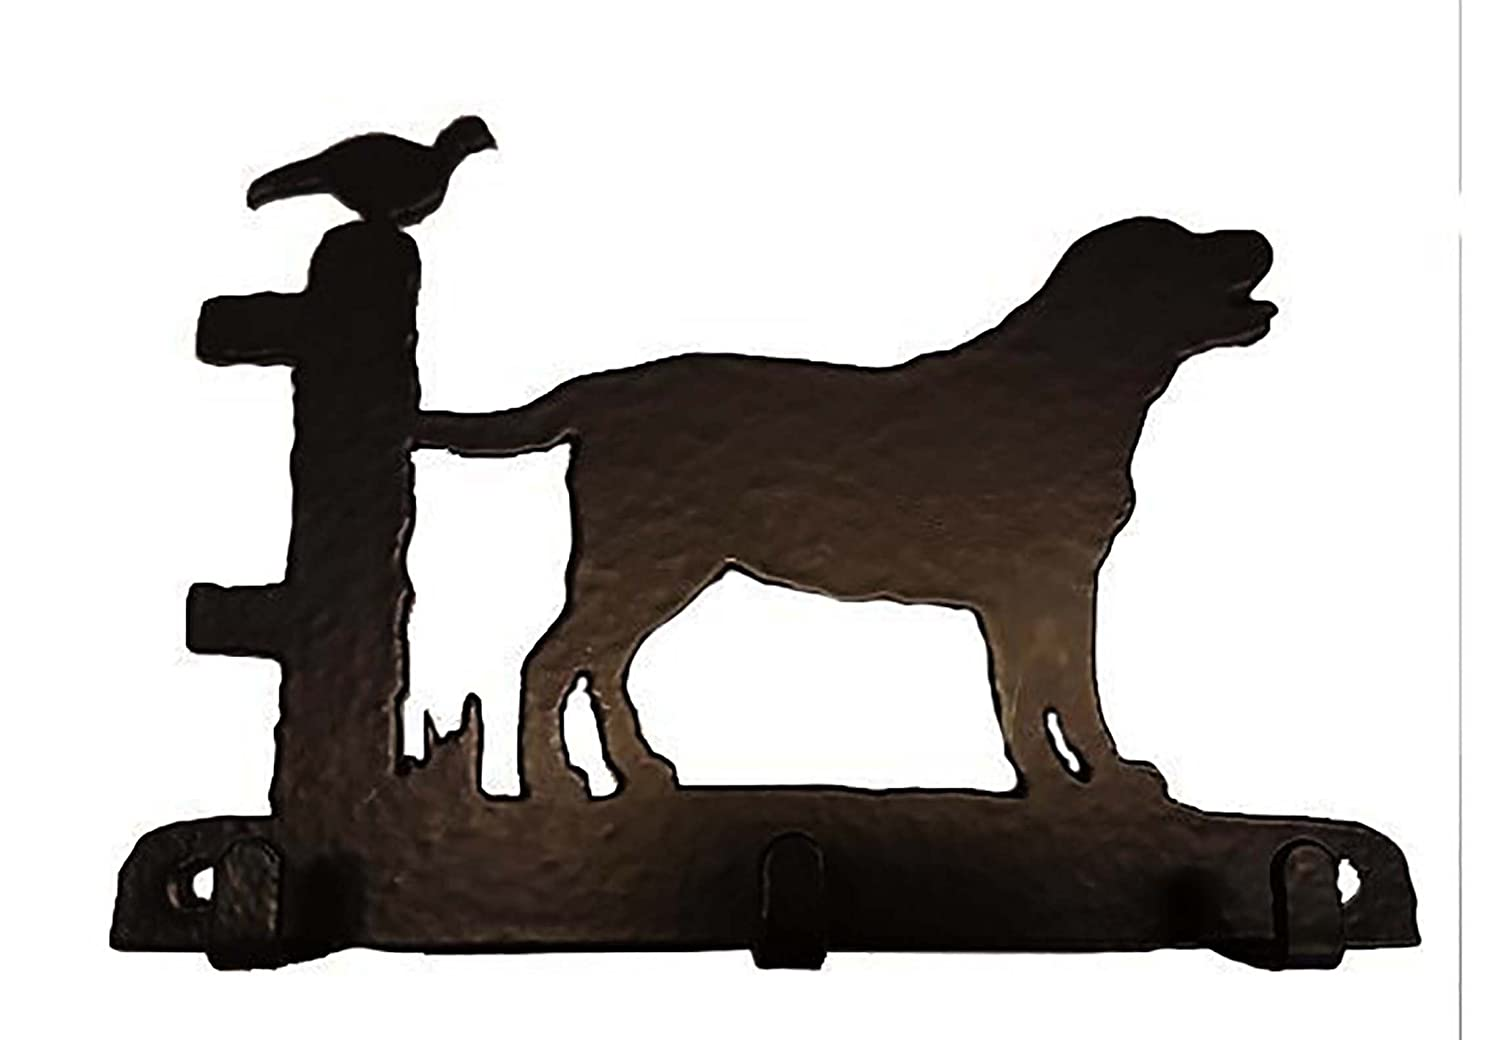 Hungarian Vizsla Lovers Gift – KEY RACK - Ironwork silhouette Dog Shaped Key Rack – Unique quality hand made 3 Hook Key / Lead Rack Quality Home Products